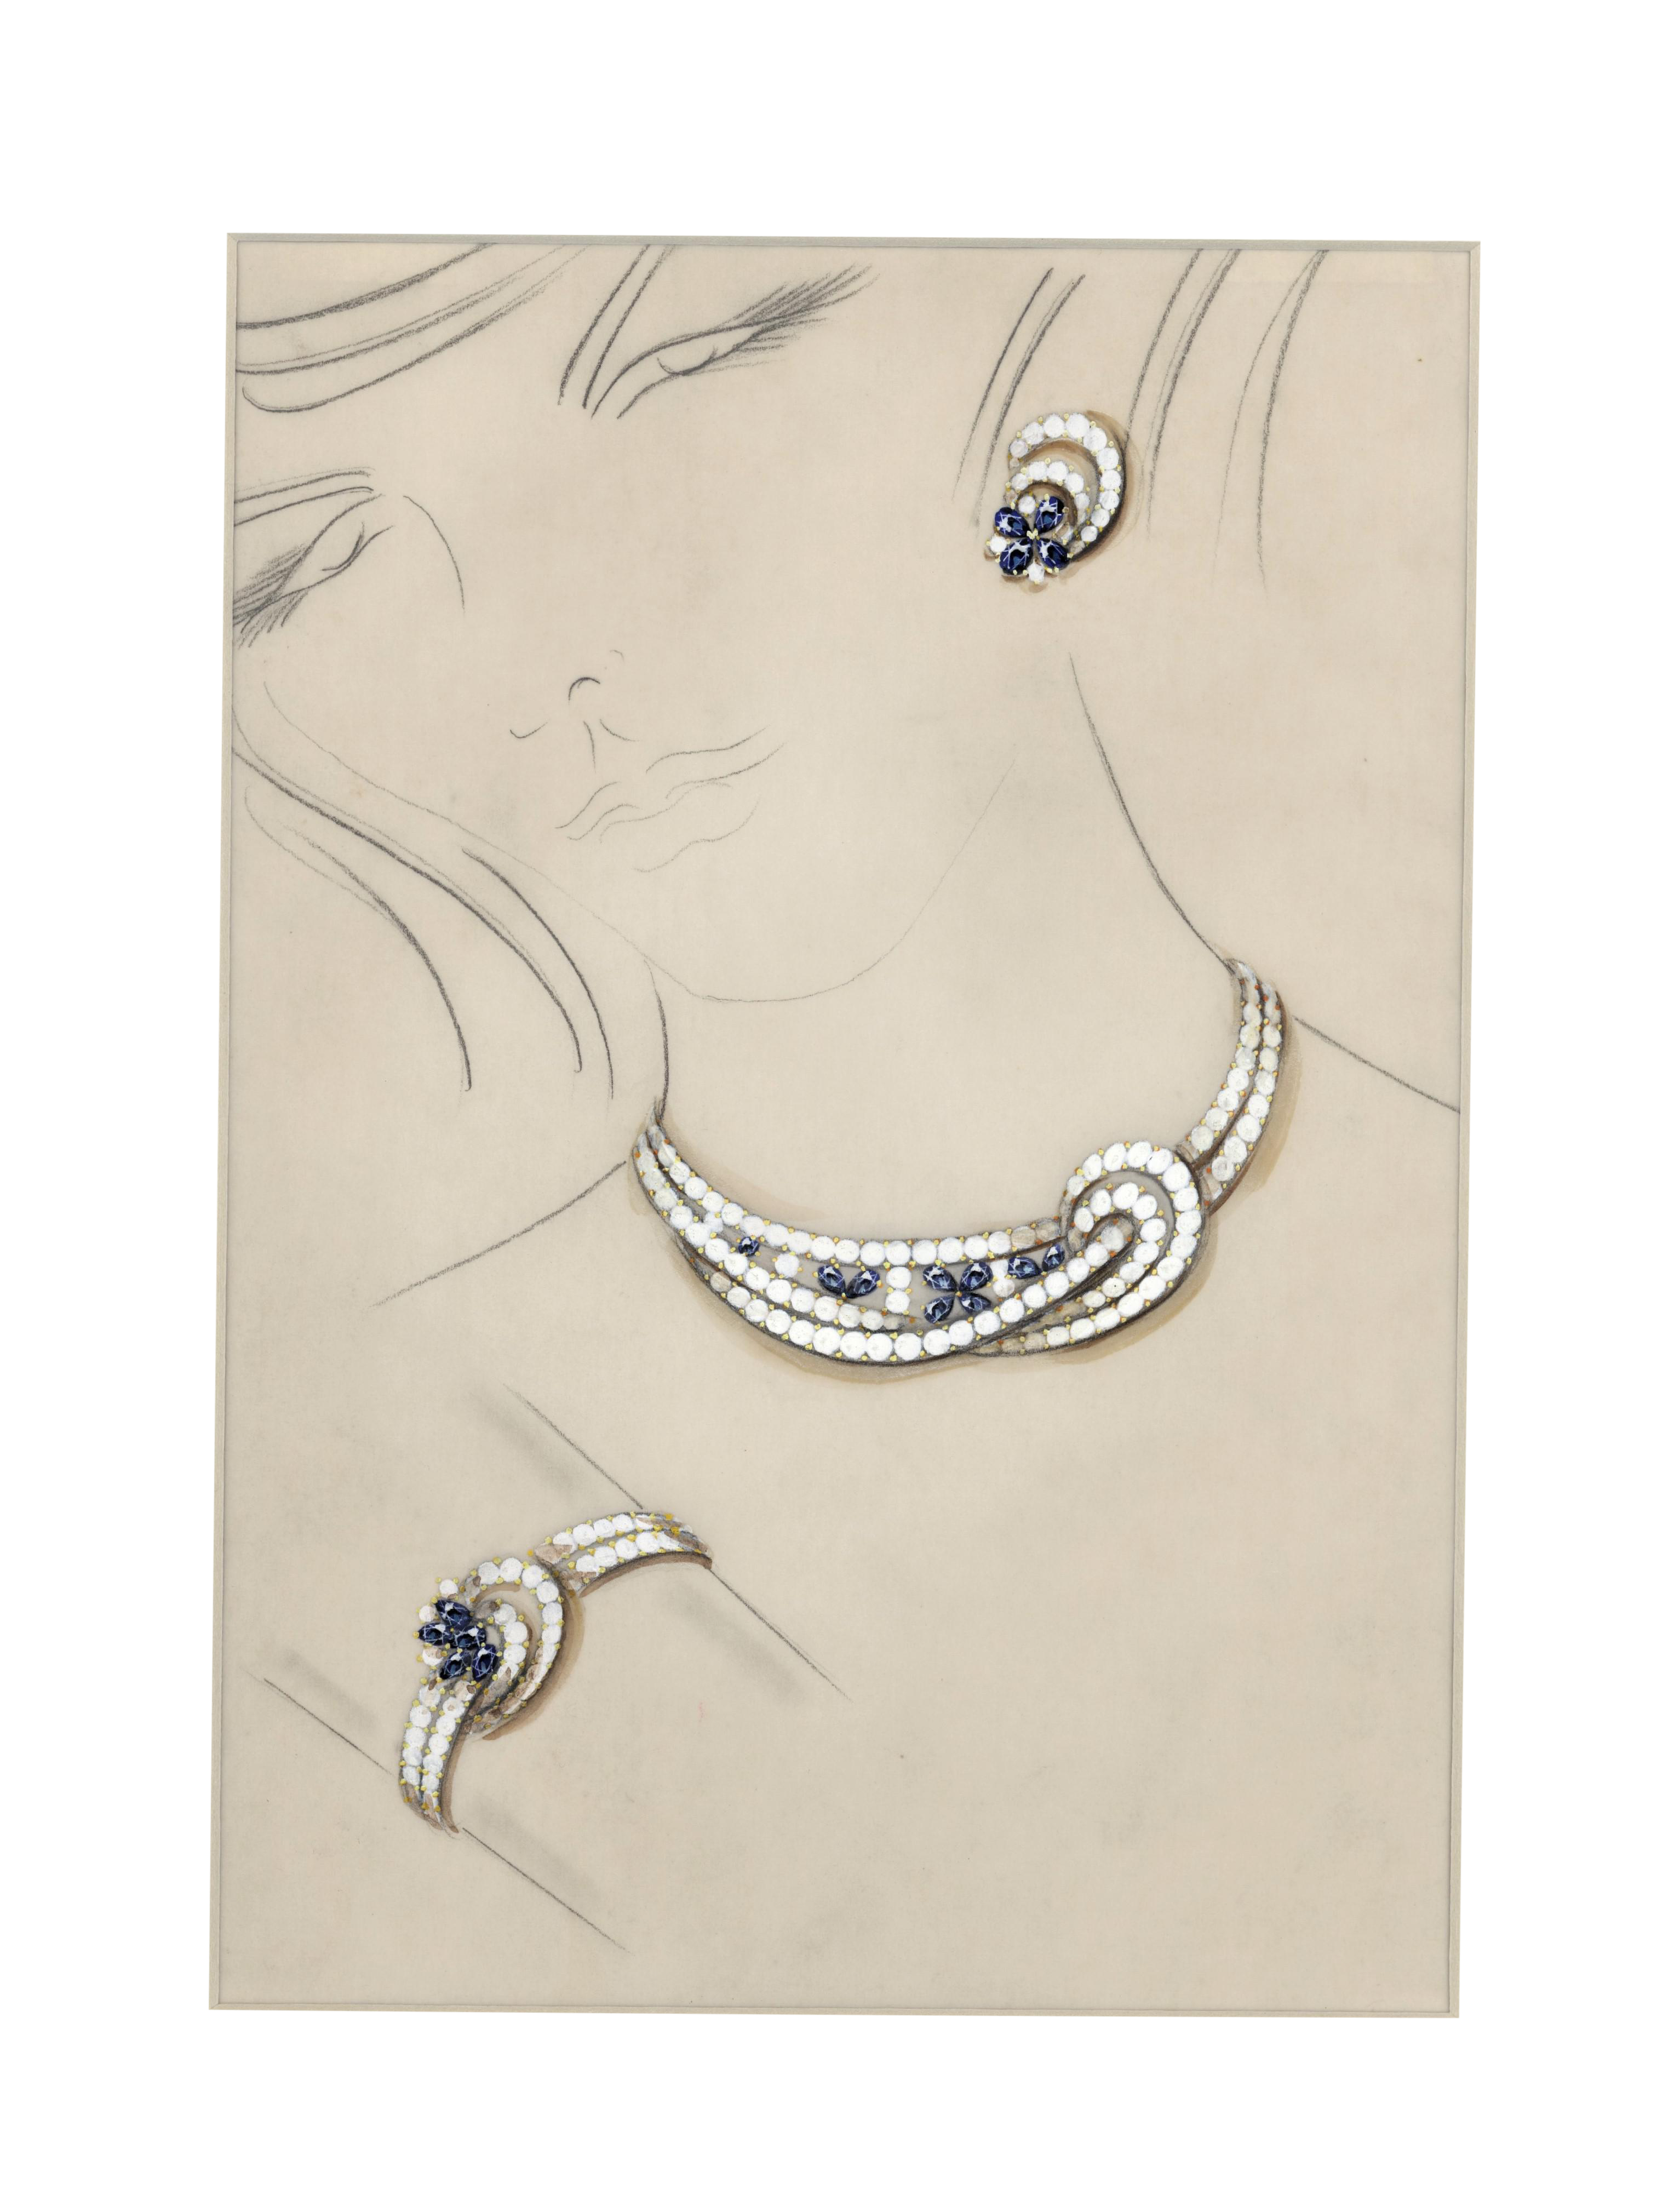 Earrings drawing realistic. Rare matted original french